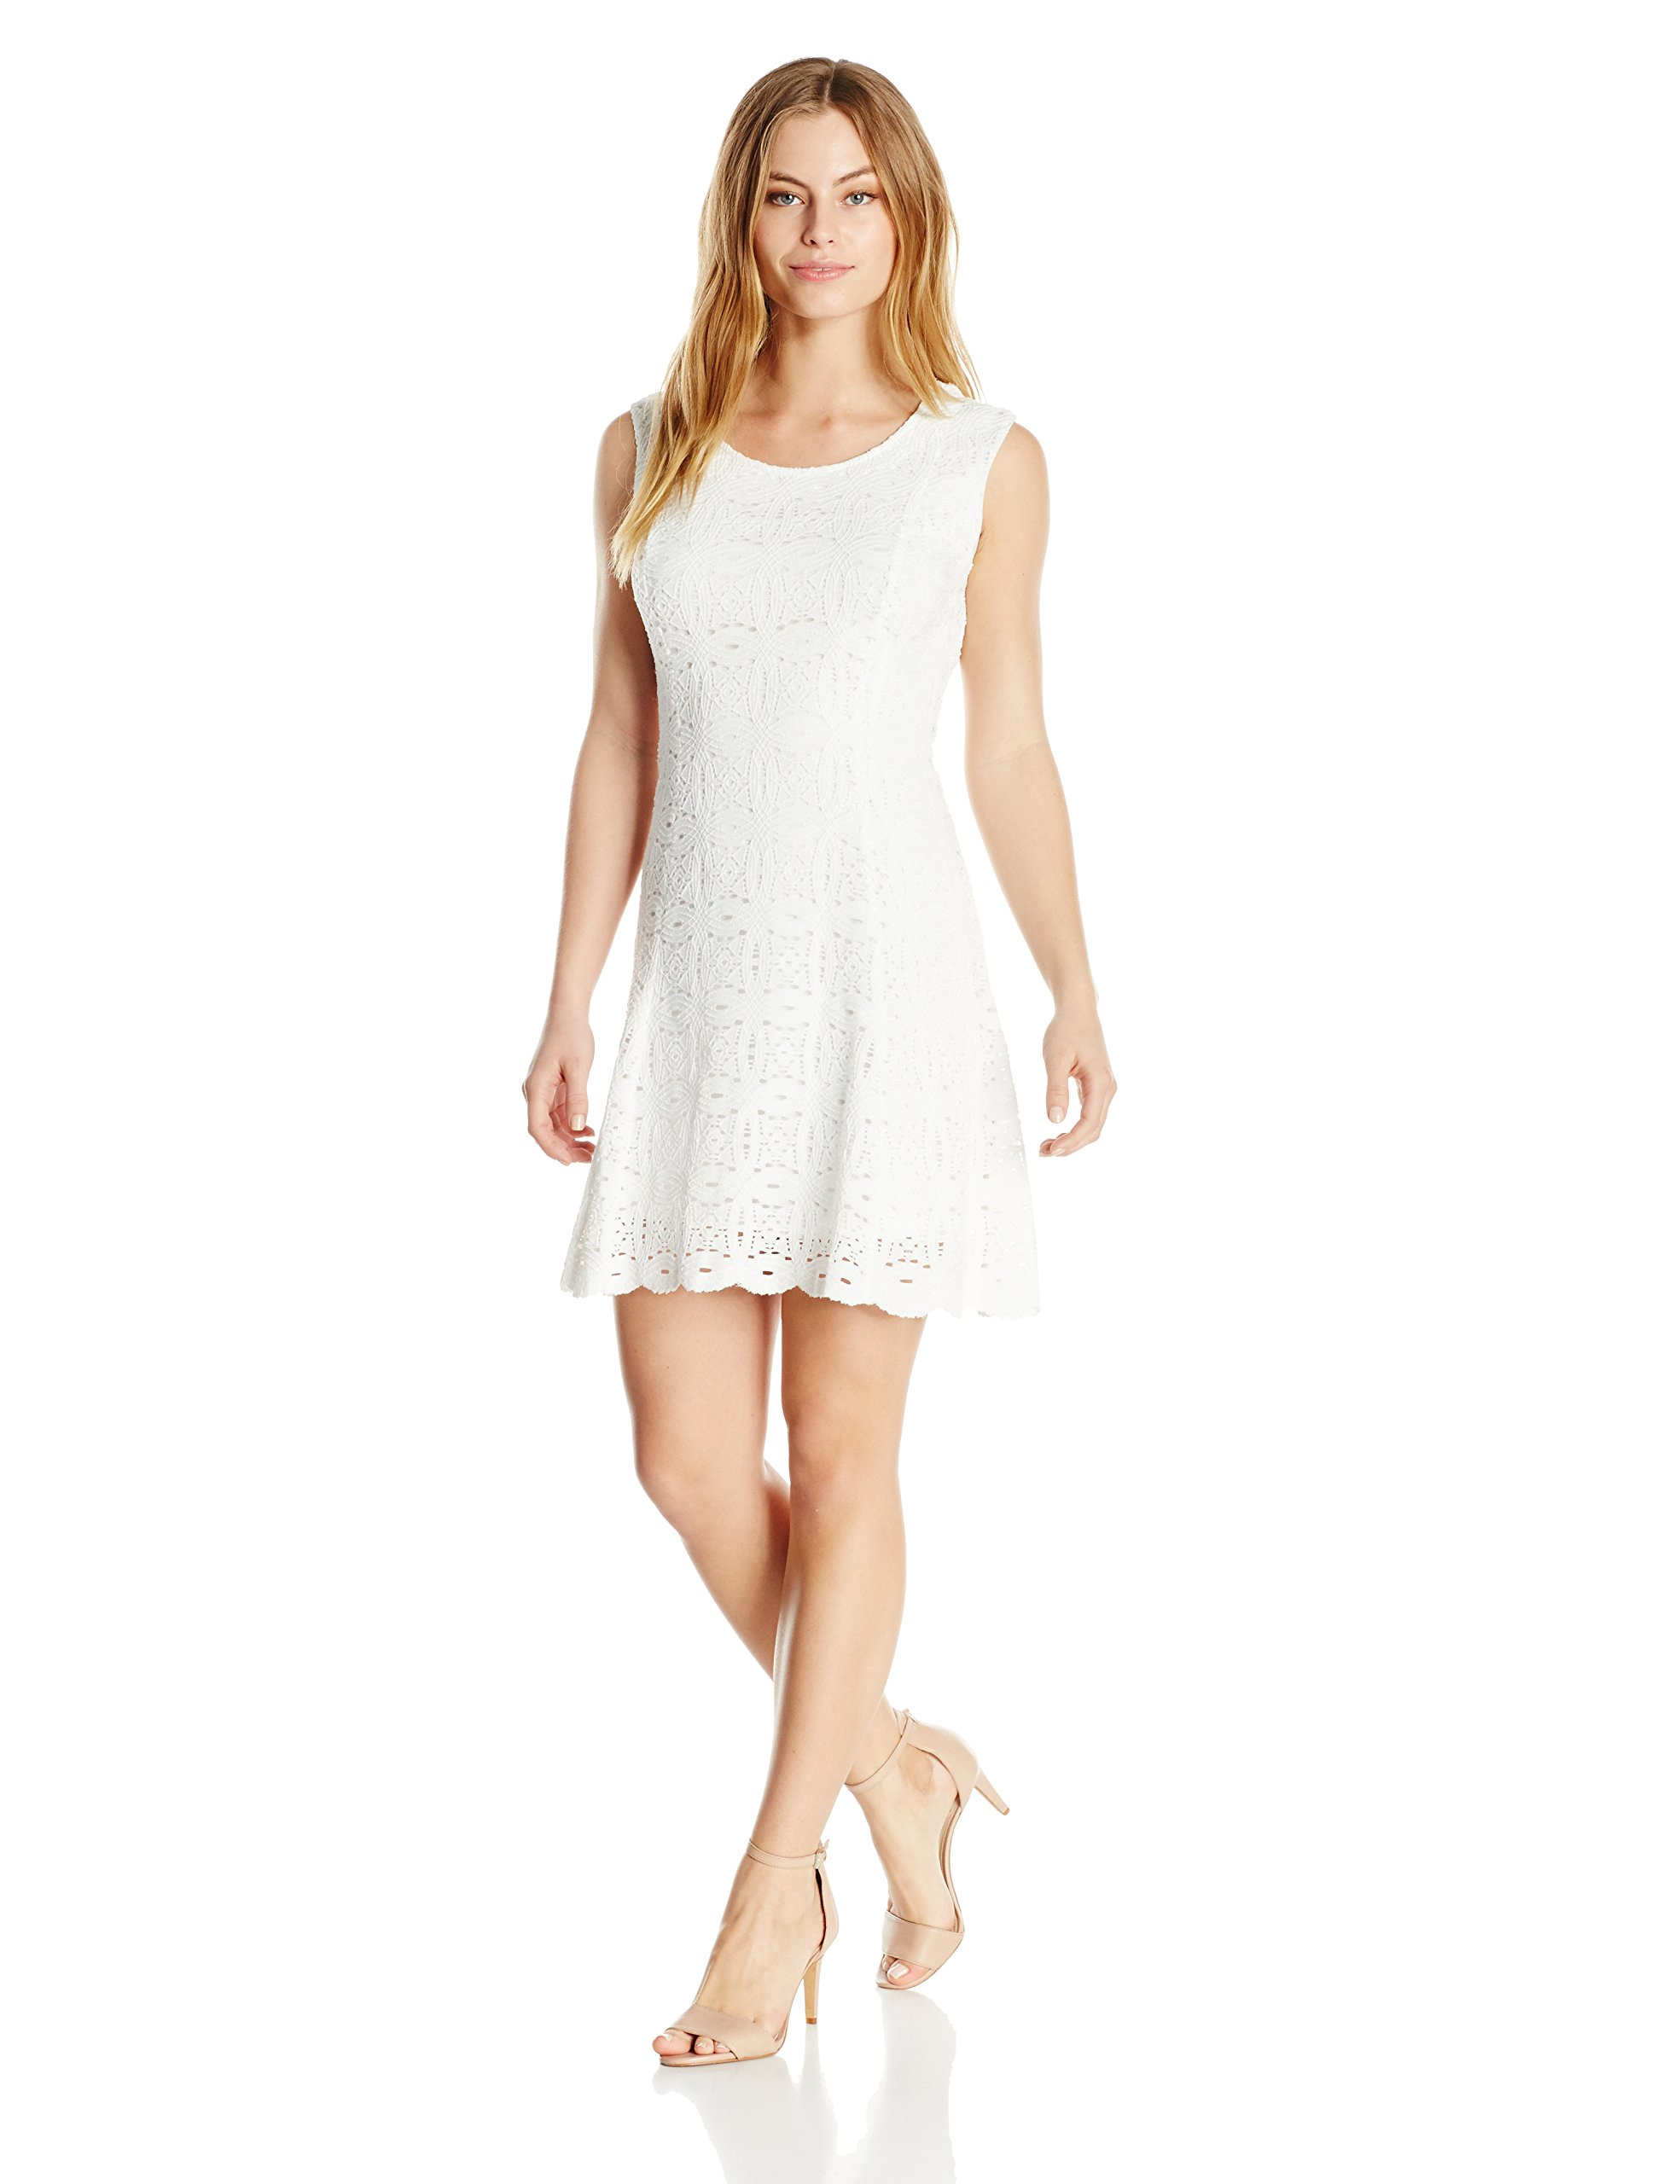 Ronni Nicole Women's Petite Sleevless Fit N Flare Medallion Lace, Ivory, 8P